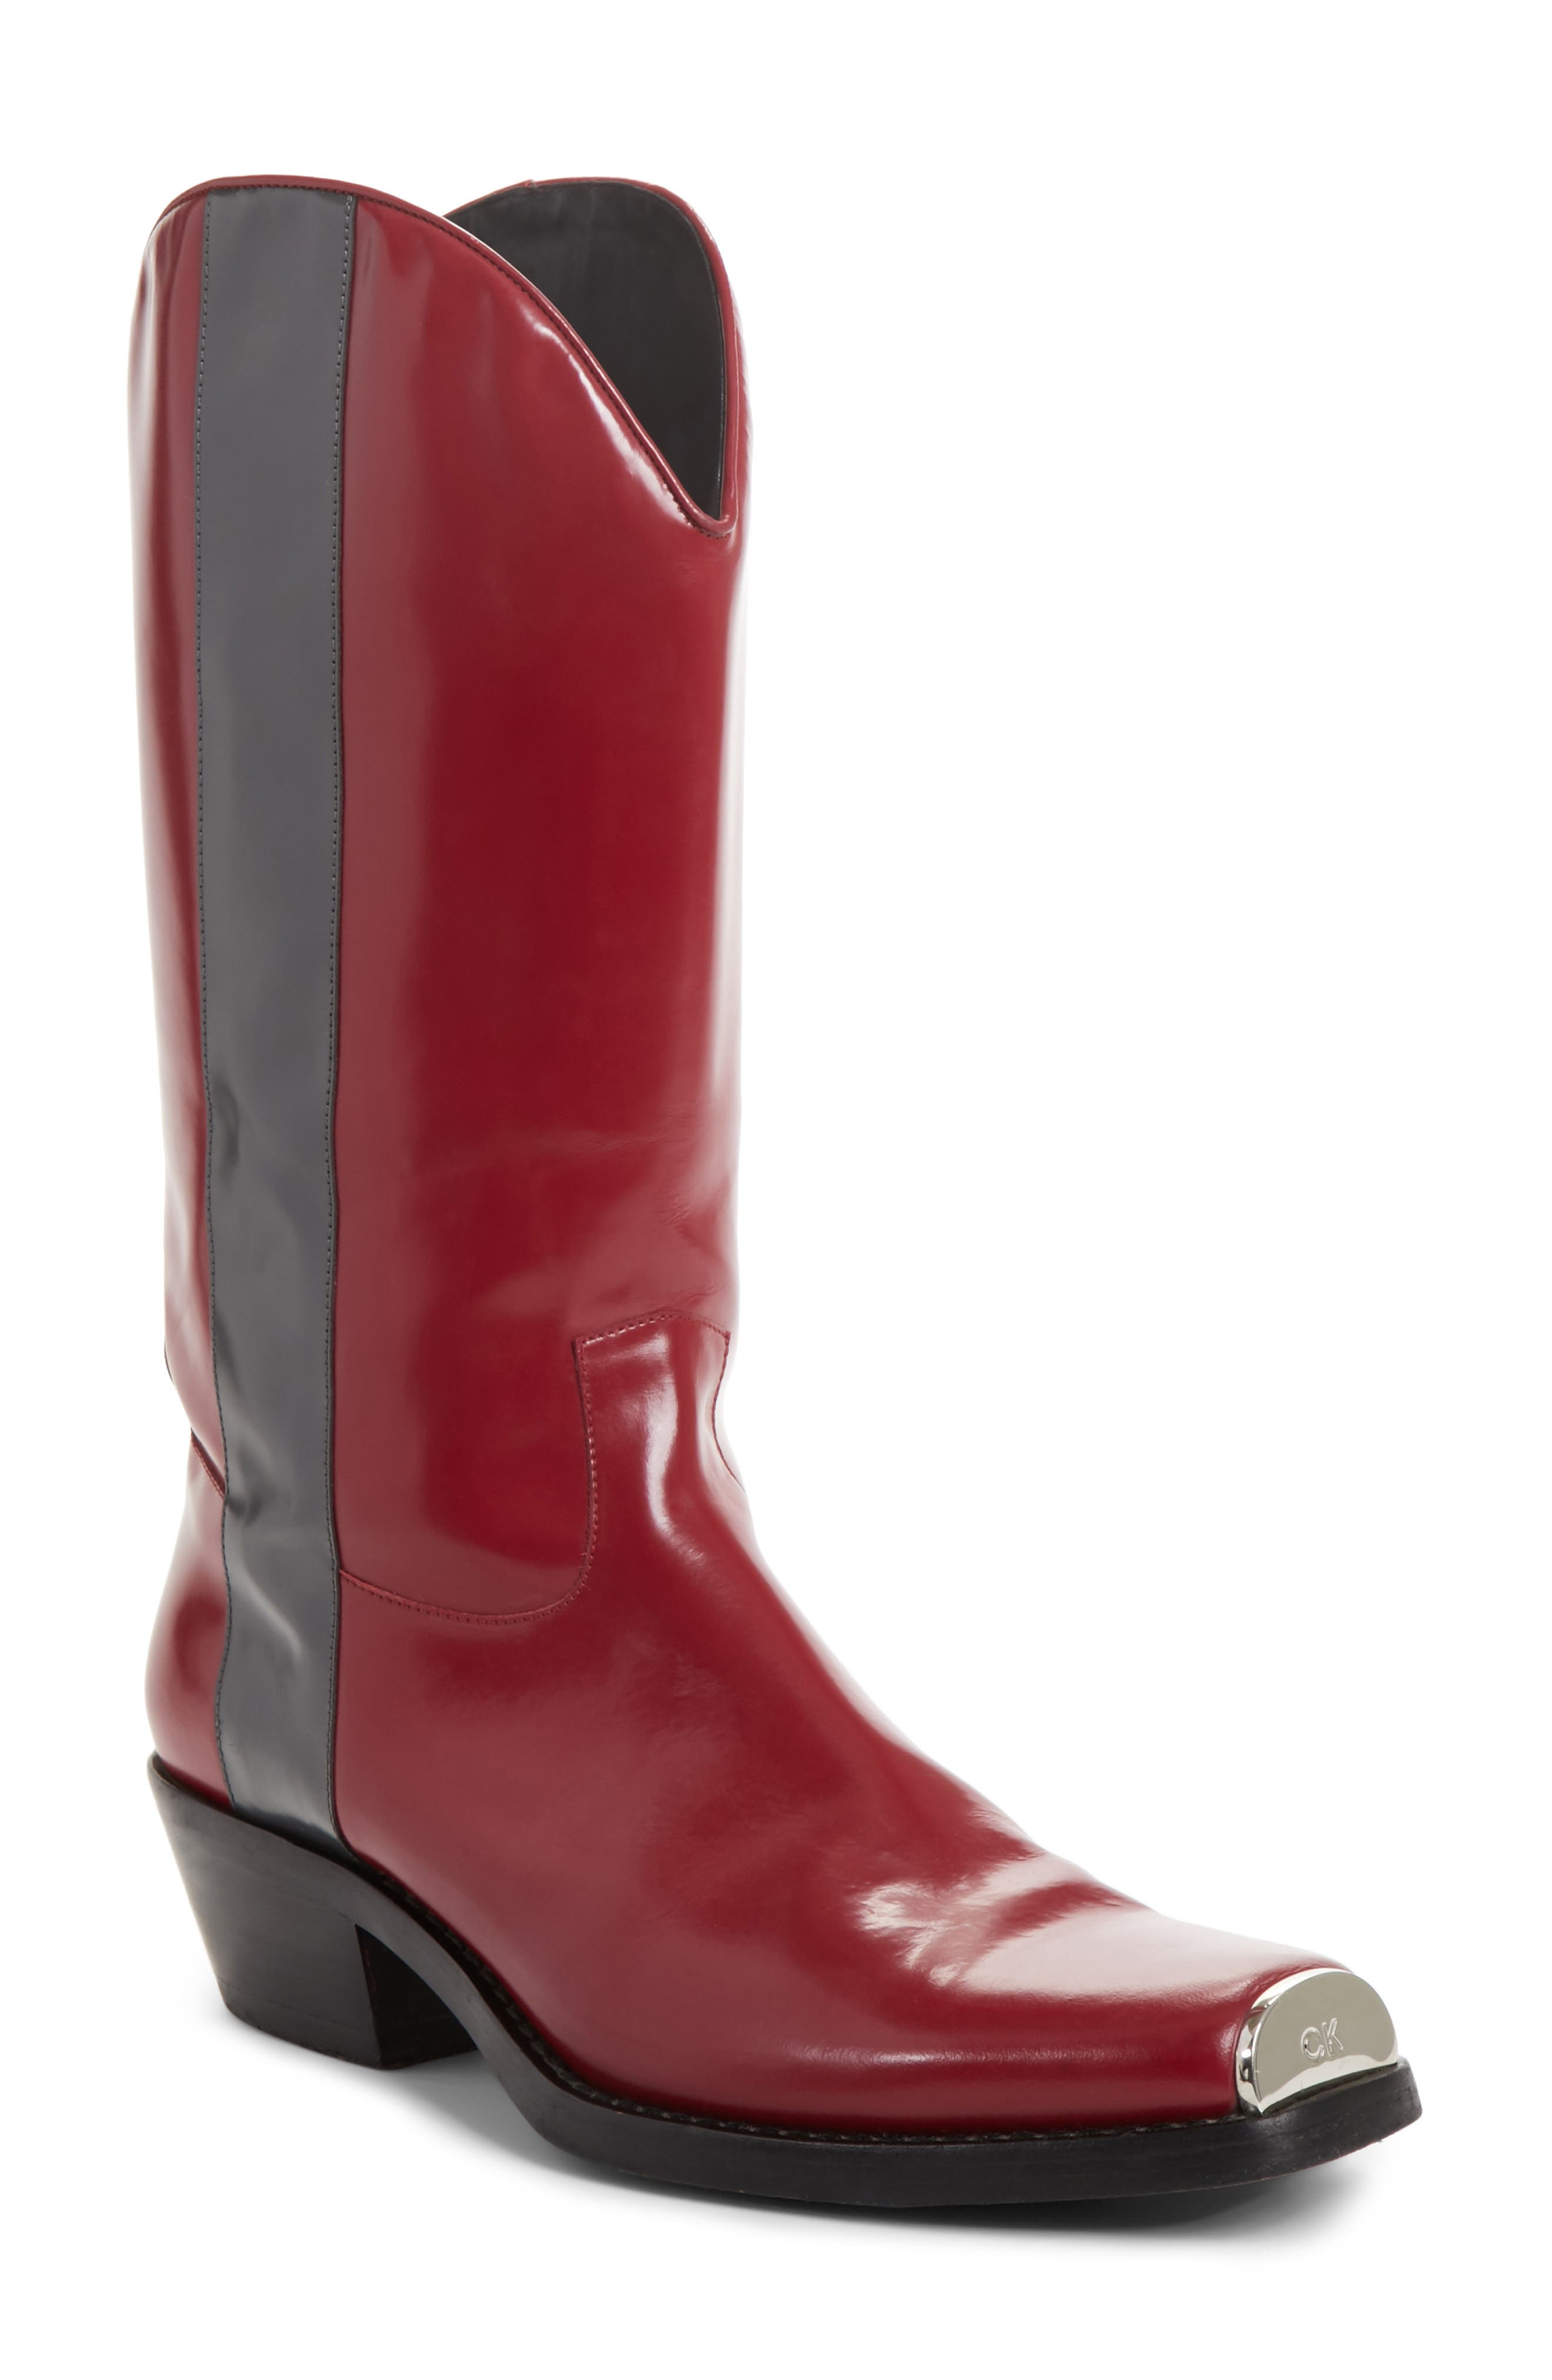 Chris Western Metal Tip Boot,                         Main,                         color, Dark Red/ Anthracite Leather